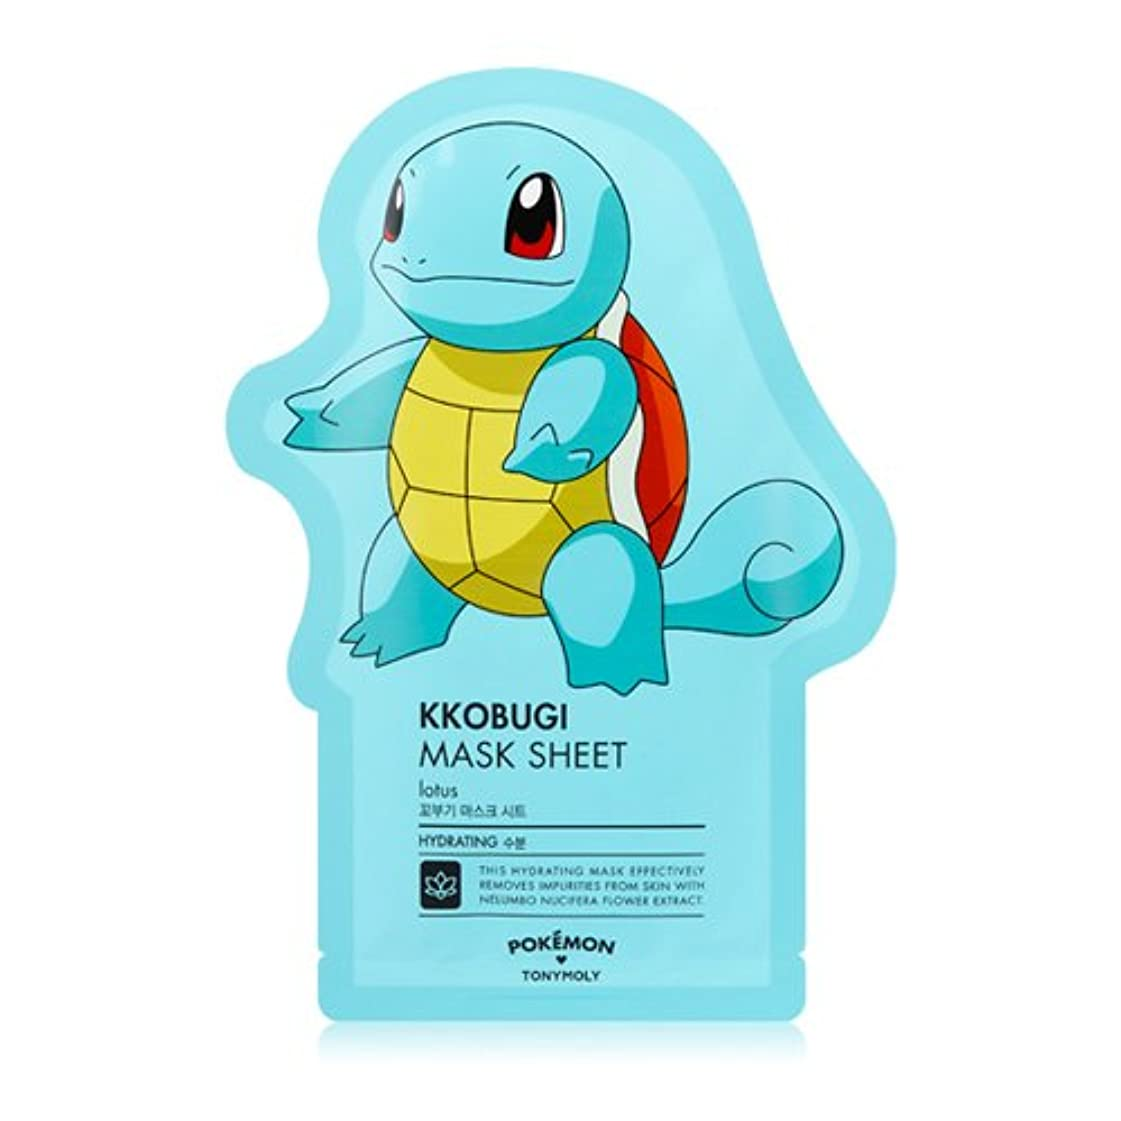 最近期待適用する(3 Pack) TONYMOLY x Pokemon Squirtle/Kkobugi Mask Sheet (並行輸入品)